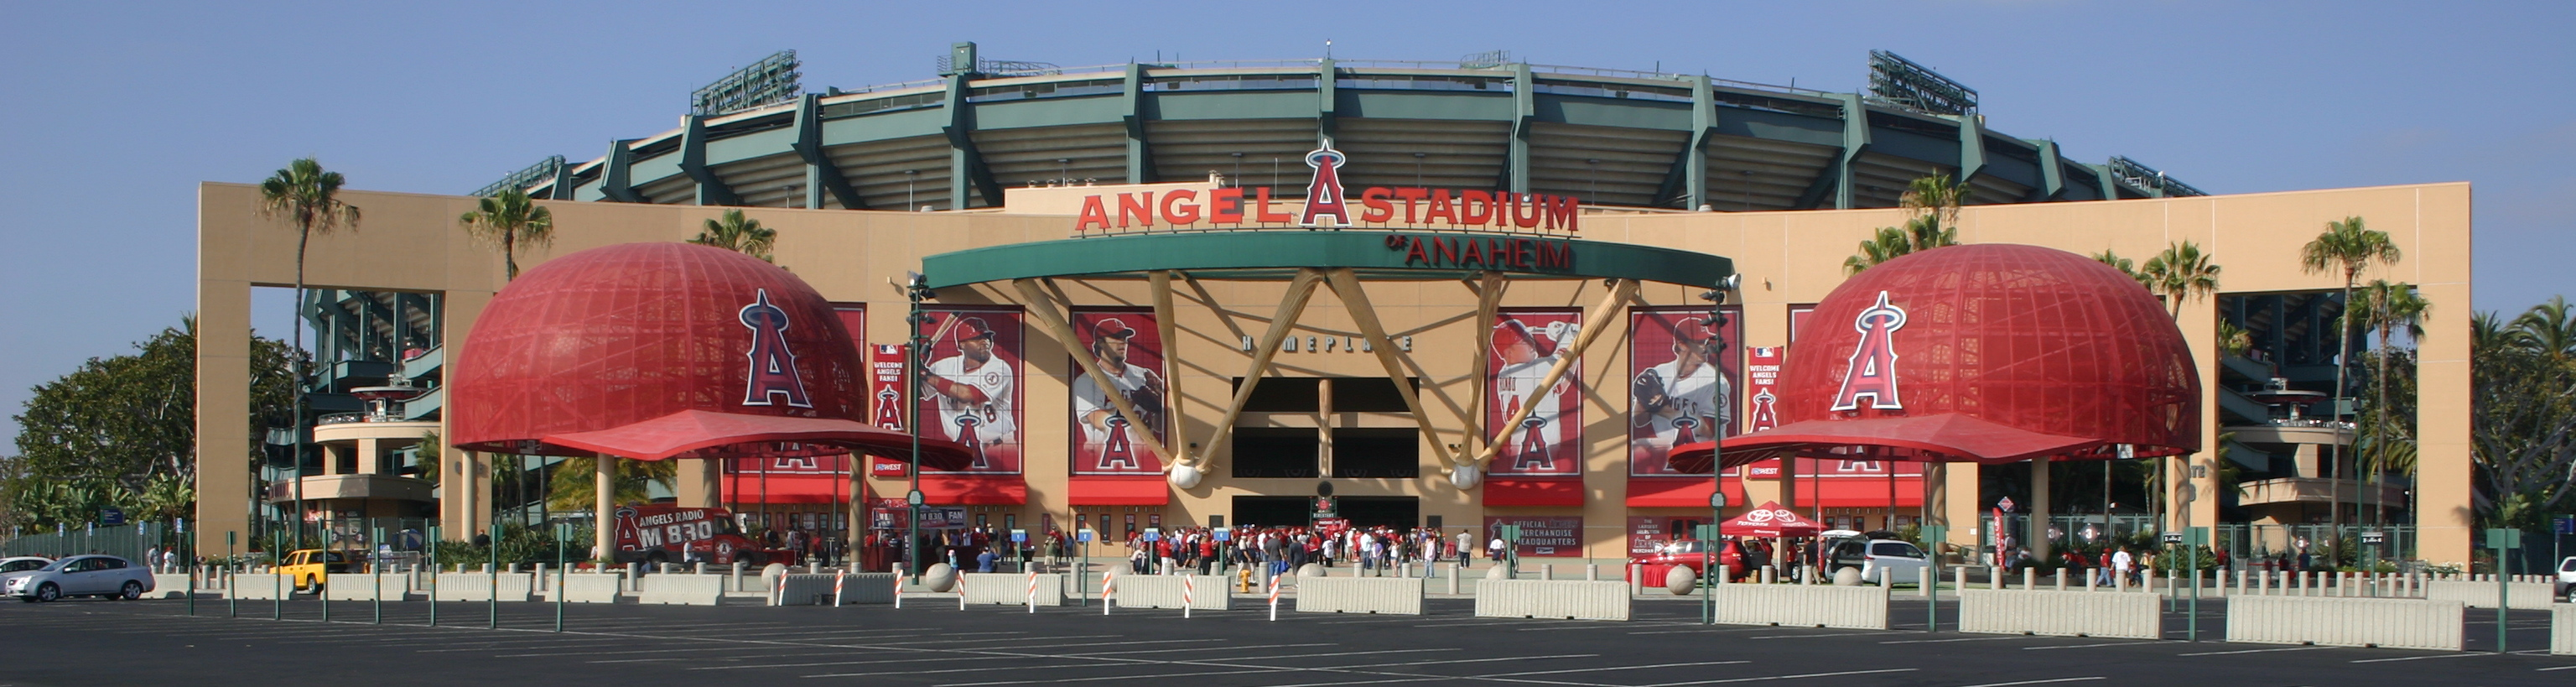 Angel_Stadium_Entrance.jpg